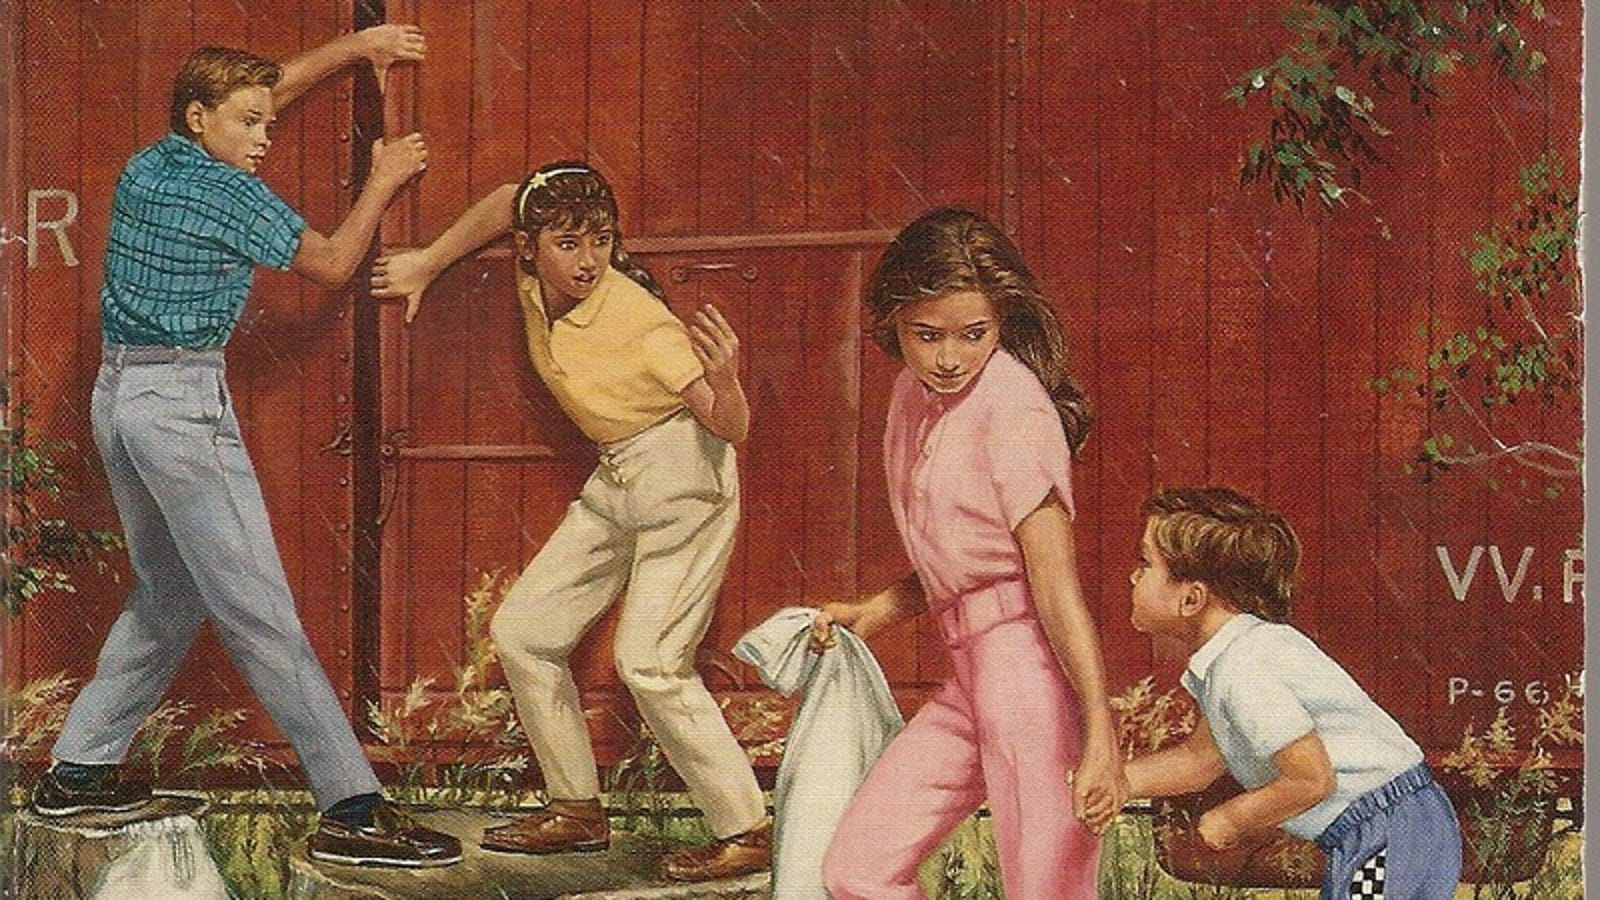 What the hell happened to the Boxcar Children's parents?